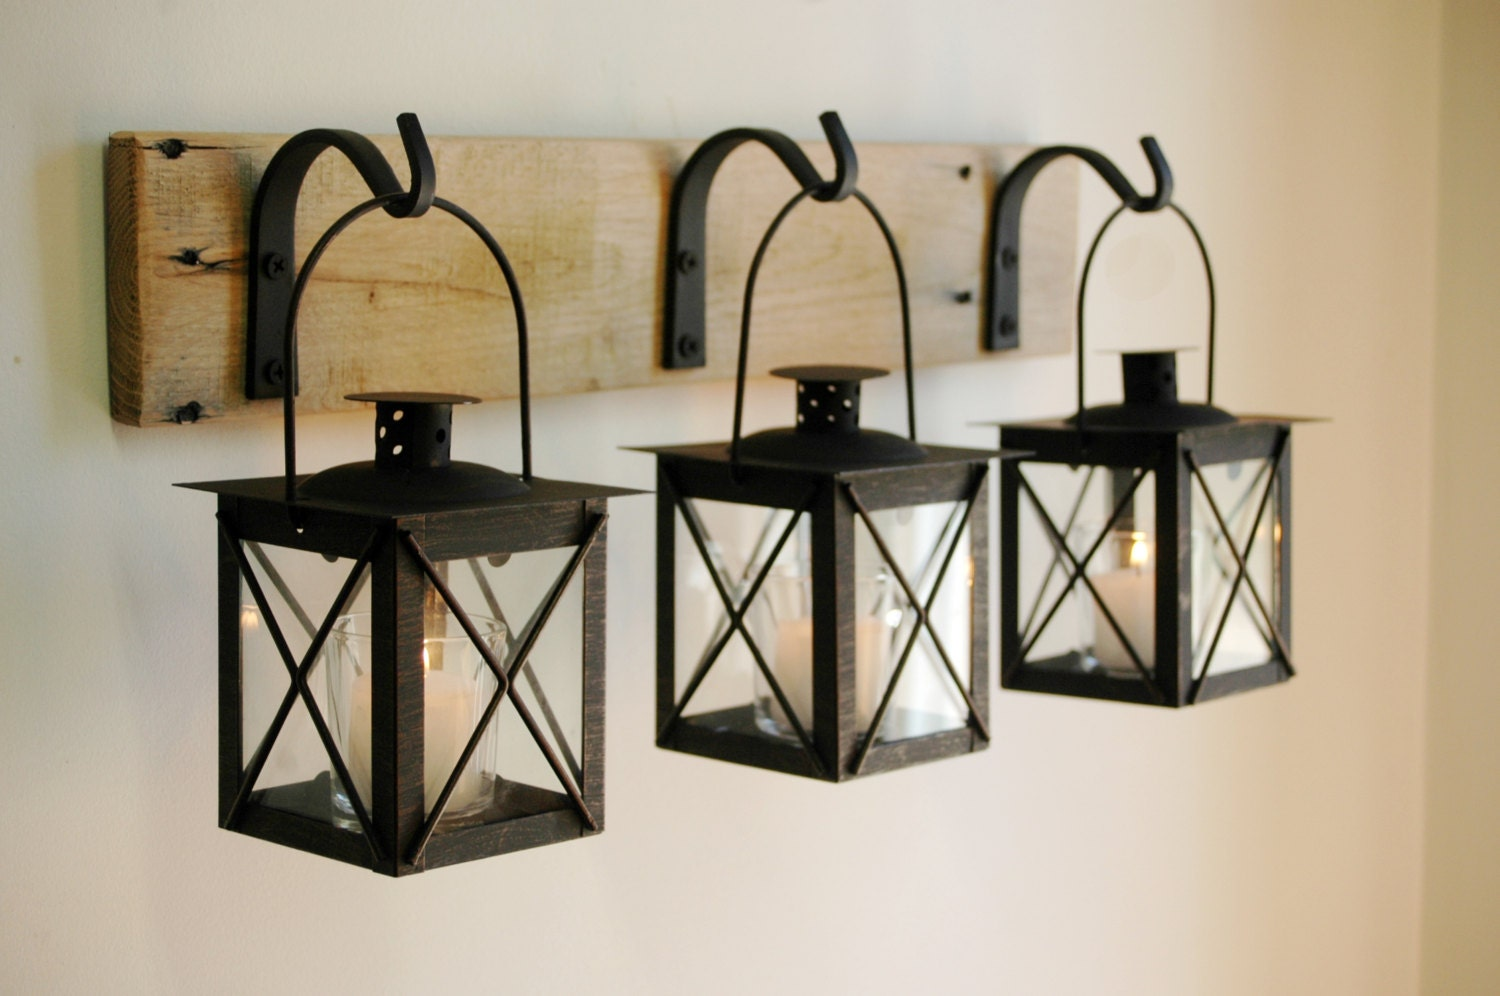 Black lantern trio wall decor home decor rustic decor - Home decor picture ...